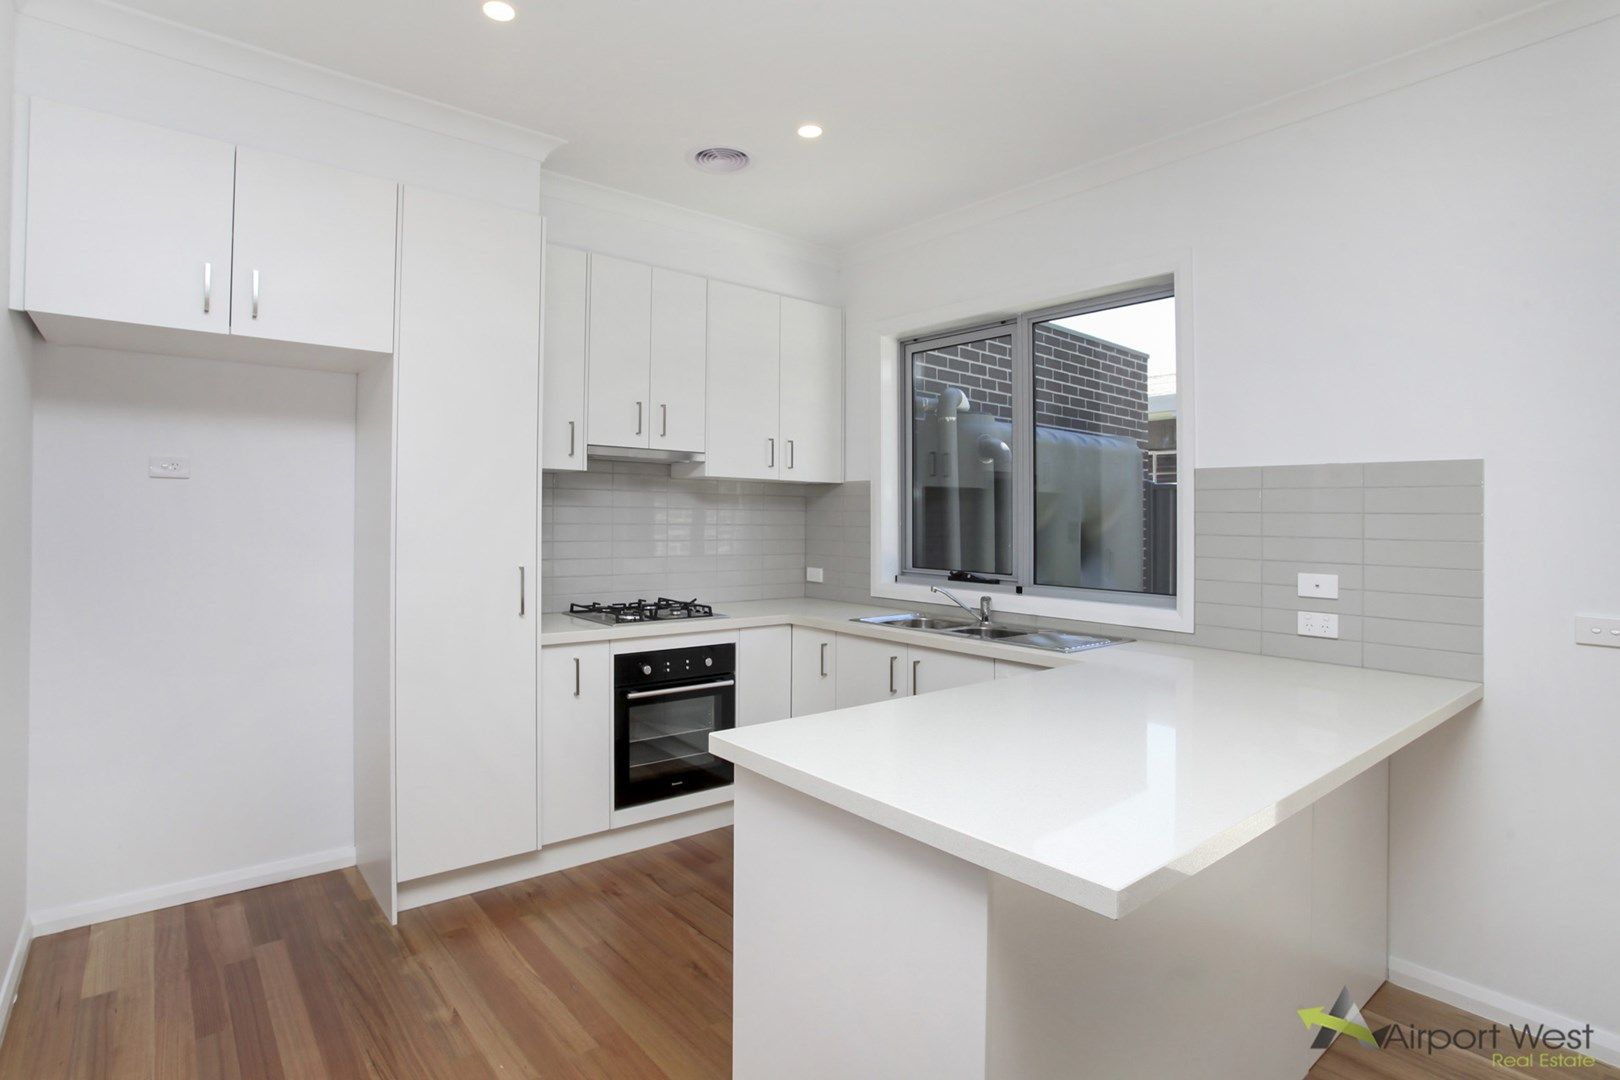 1/12 Hart Street, Airport West VIC 3042, Image 1